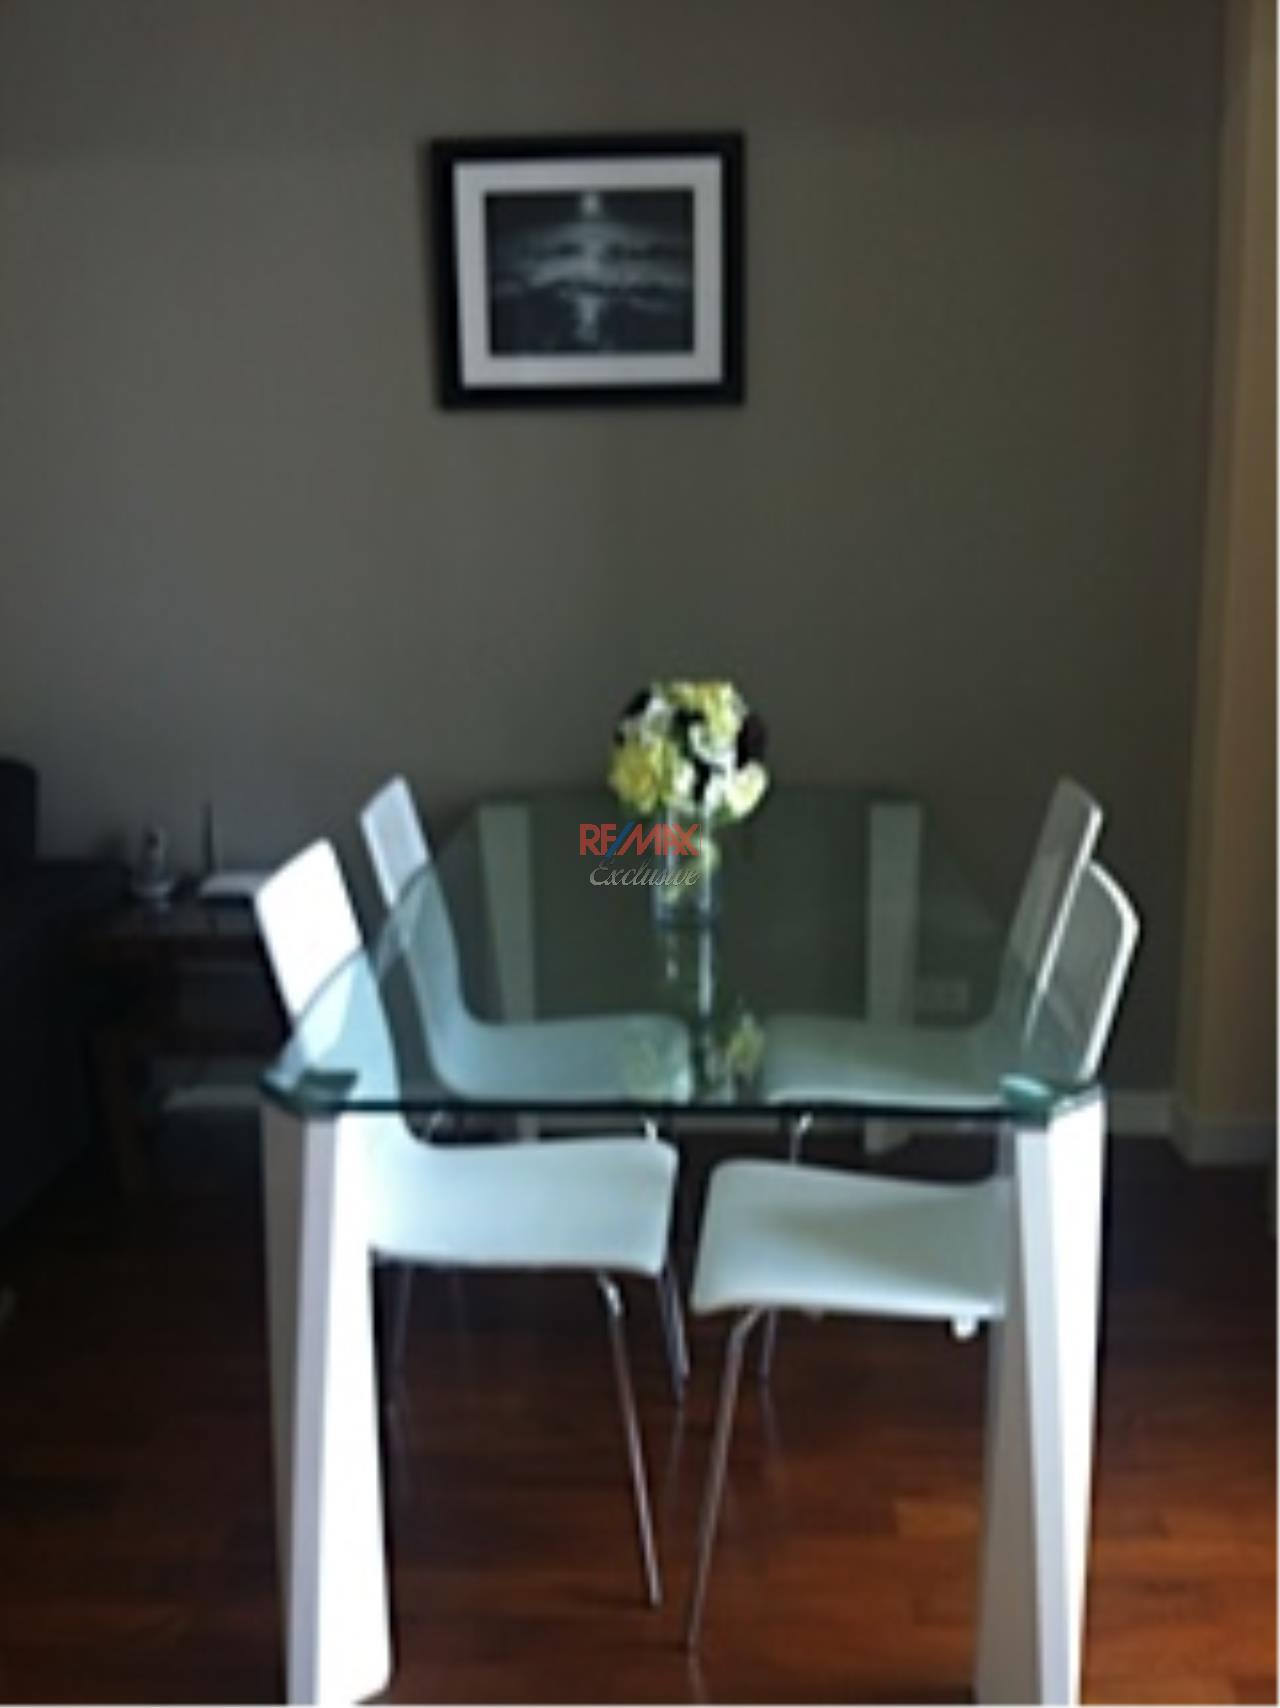 RE/MAX Exclusive Agency's BAAN SIRI 24, Sukhumvit 24, Fully-Furnished, 1 Bedroom, 60 Sq.M. High Floor, City View! 5